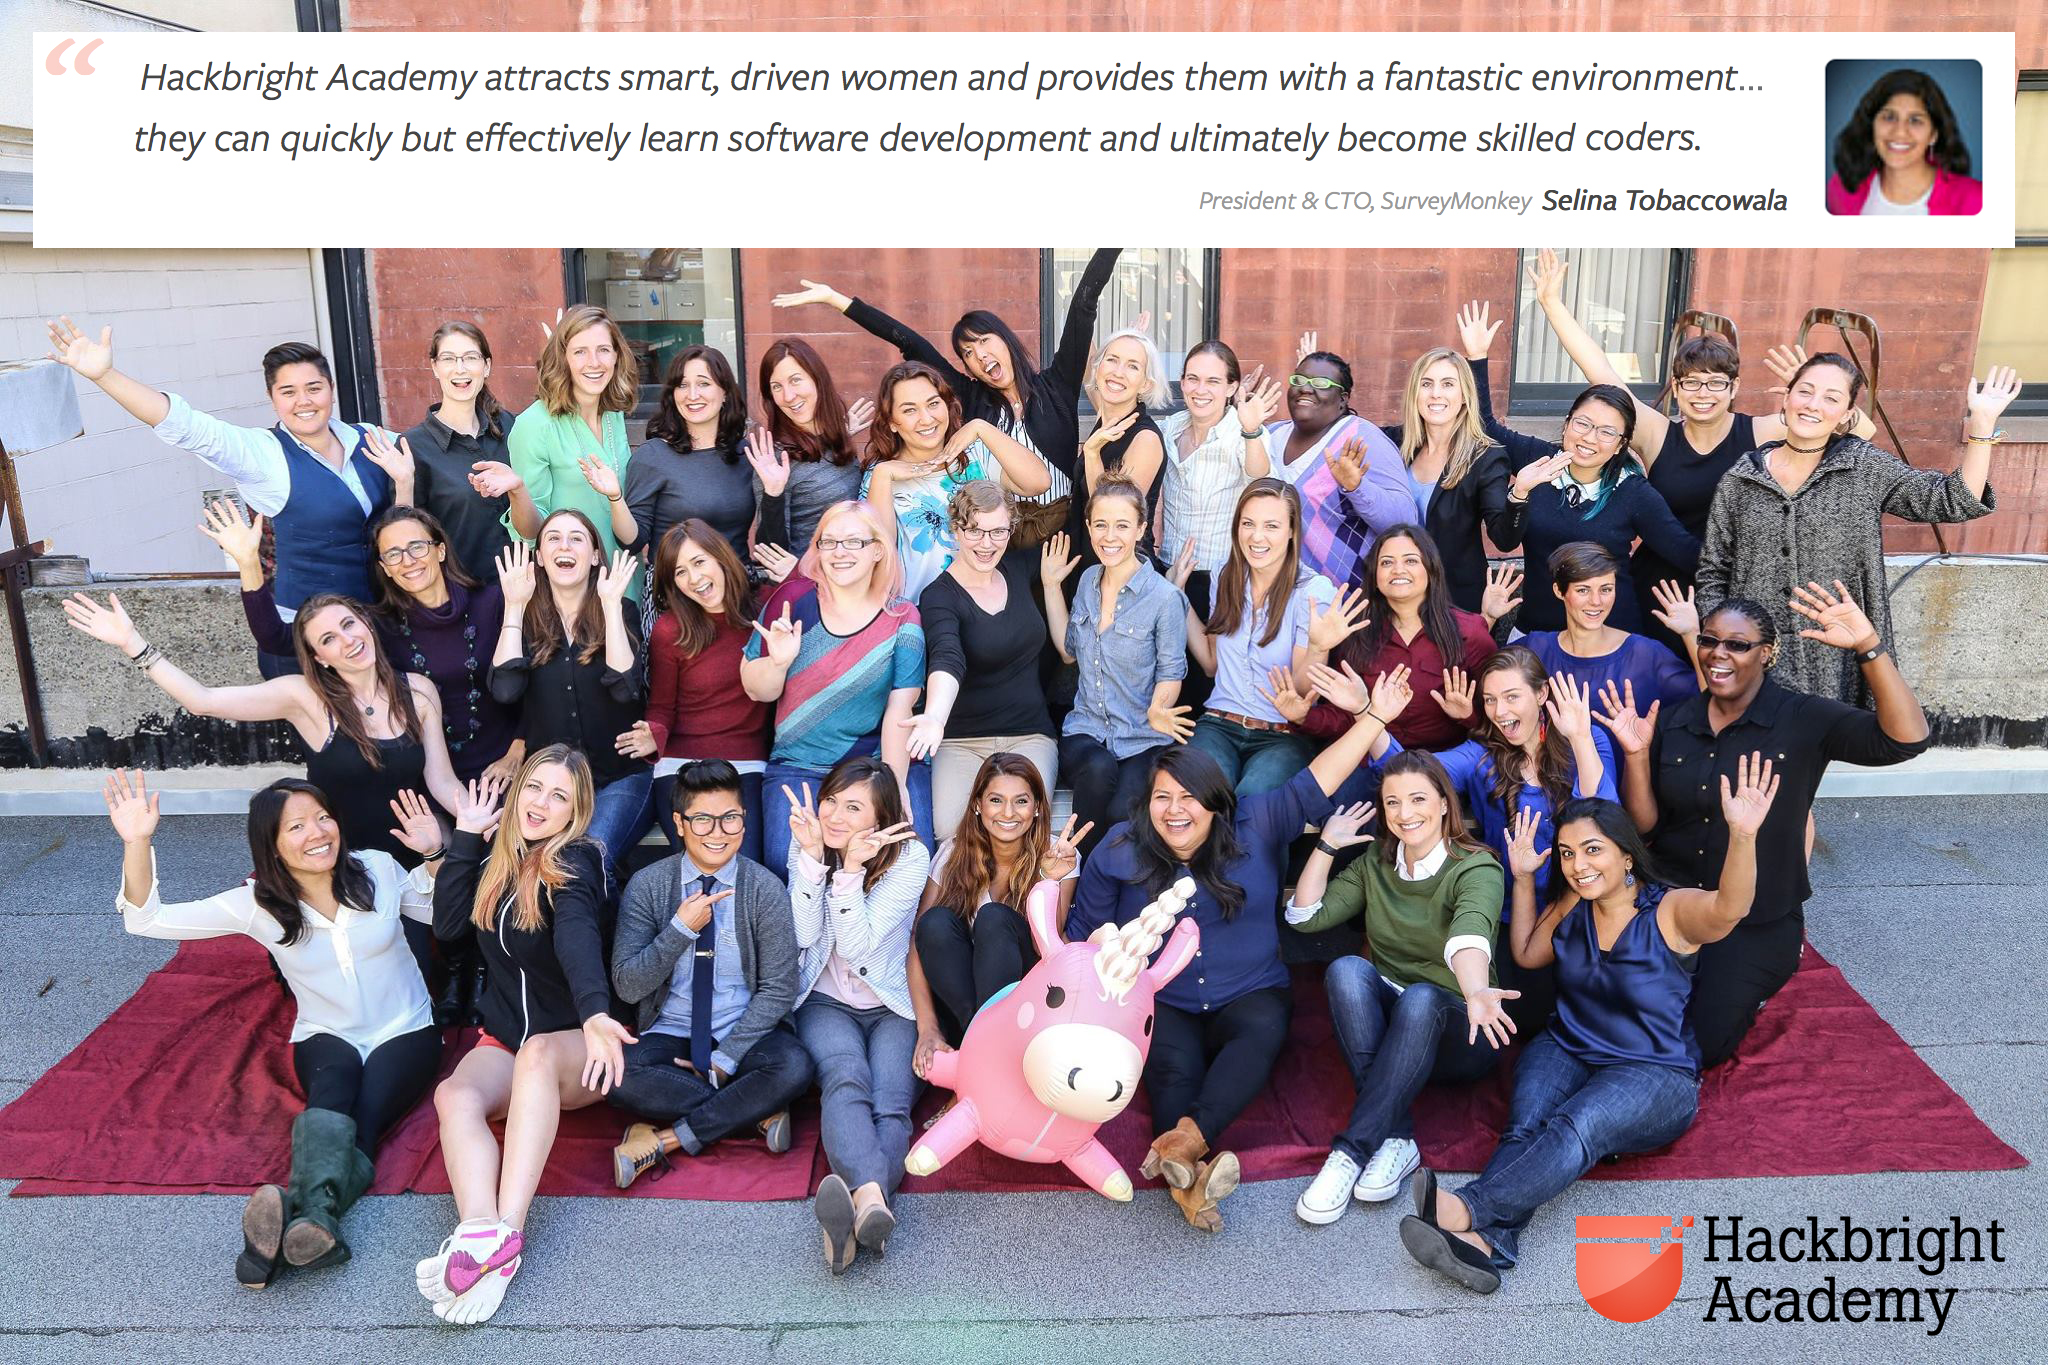 Hackbright Academy - Fall 2015 Career Day is December 1, 2015 - meet 34 female software engineers!